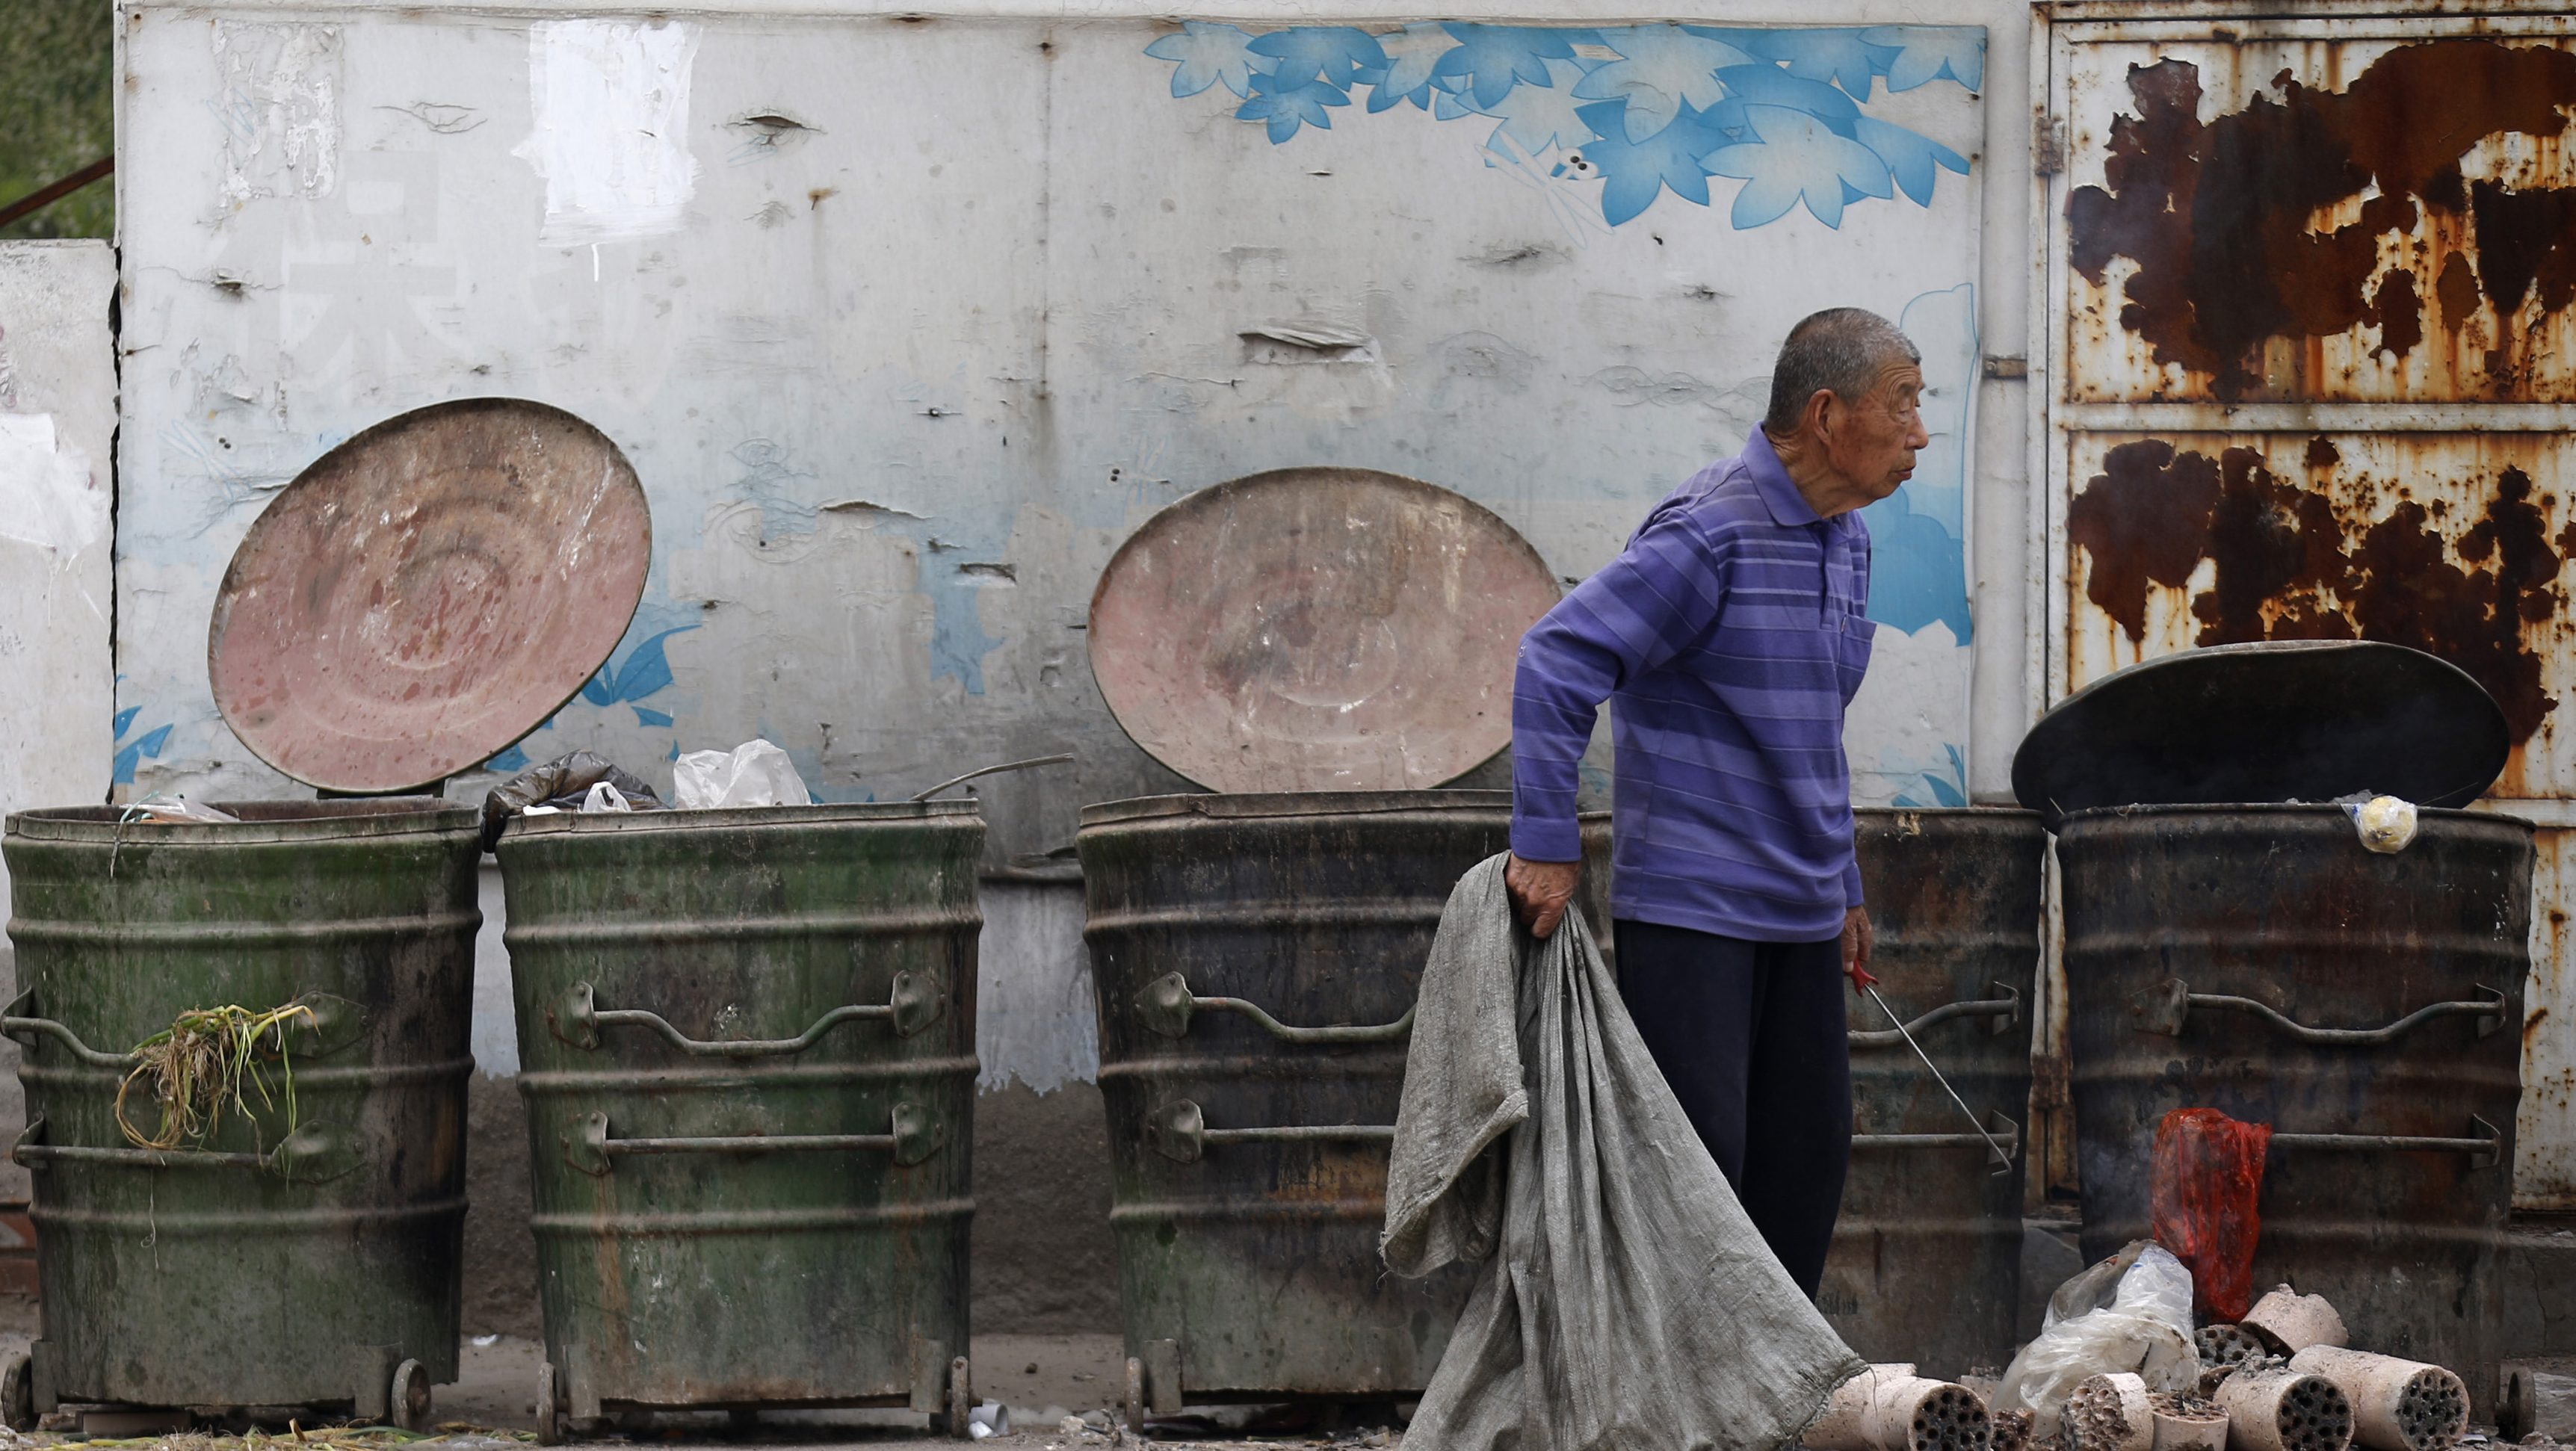 A garbage collector rummages through trash cans to find recyclable garbage at a residential area for migrant workers in Beijing May 7, 2013. For two decades, Chinese local governments have been able to ignore the problem of housing migrants, thanks to the makeshift villages and other arrangements that accommodate about 40 percent of migrants.China has pledged to double household incomes over the coming decade in a bid to close a wealth gap so wide it threatens social stability. Although the proportion of extreme poverty has fallen over recent decades, about 12 percent of the country's 1.3 billion people still live on less than $1.25 per day, according to a 2013 United Nations report. Picture taken on May 7, 2013. REUTERS/Kim Kyung-Hoon (CHINA - Tags: BUSINESS SOCIETY WEALTH) - GM1E99513CW01